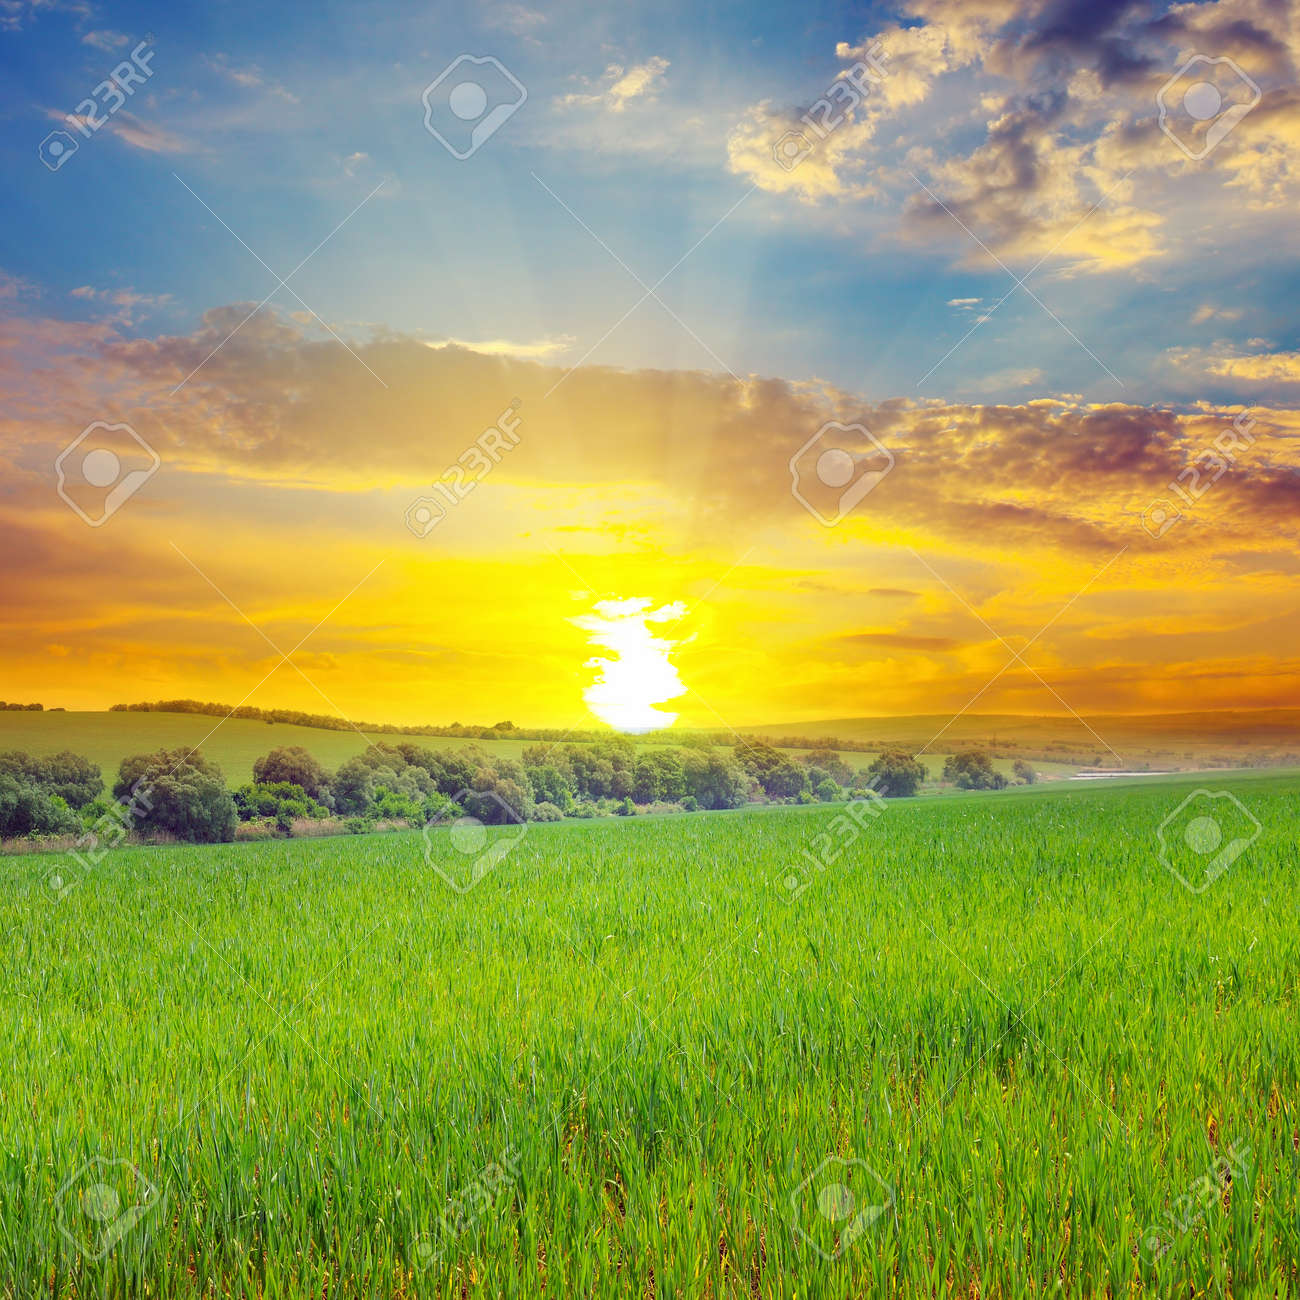 Green field, sun and blue sky. Agricultural landscape. - 146548990